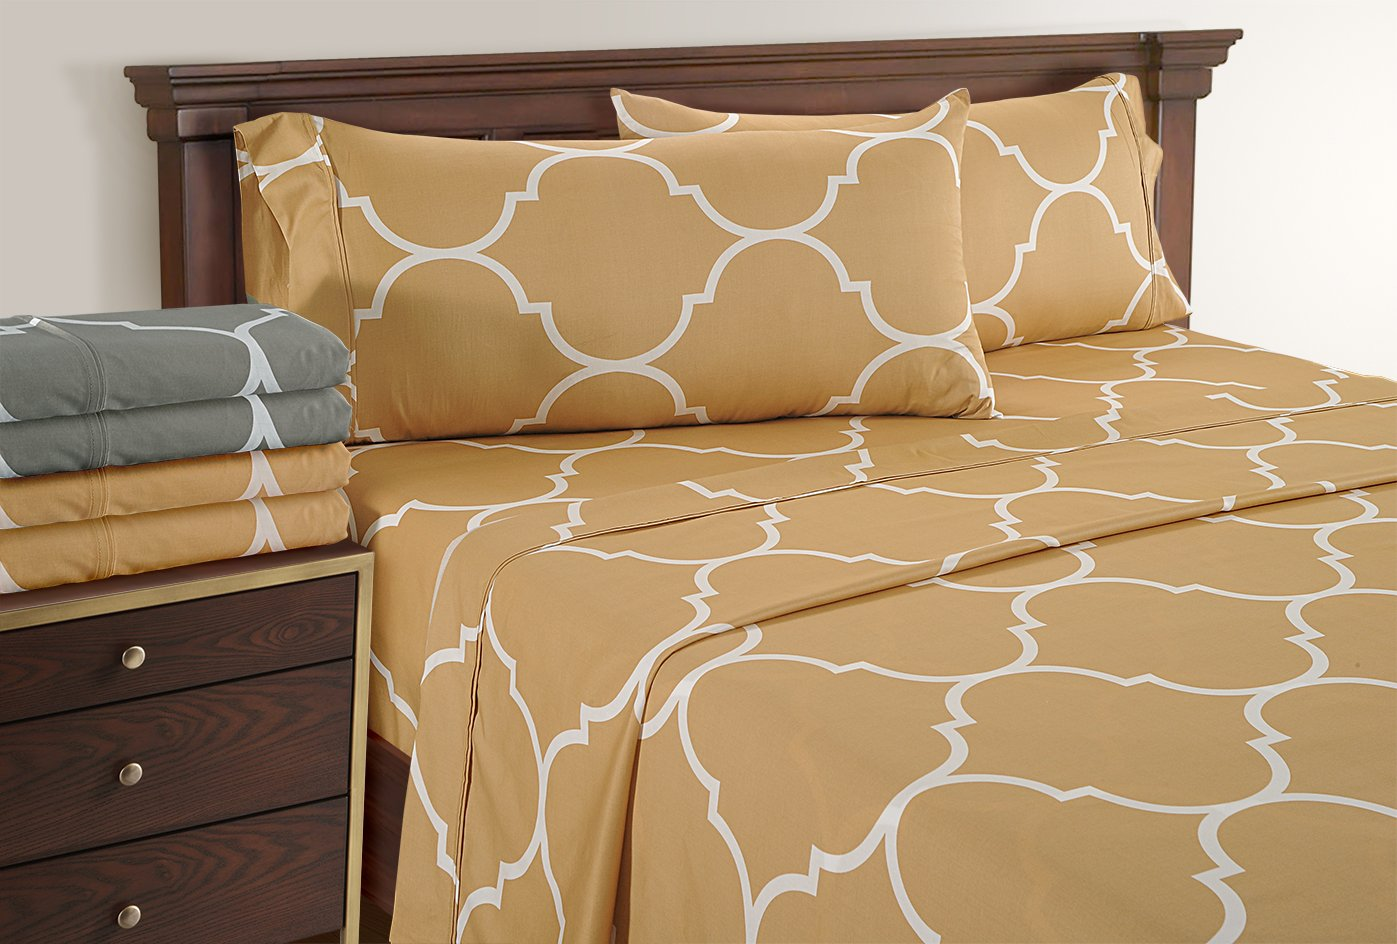 Linenwalas Full Size Bed Sheets - Quatrefoil Pattern Bedding for Teen Girls | 300 Thread Count | Printed Soft Sheets With Deep Pocket Sale ( Gold, Full)